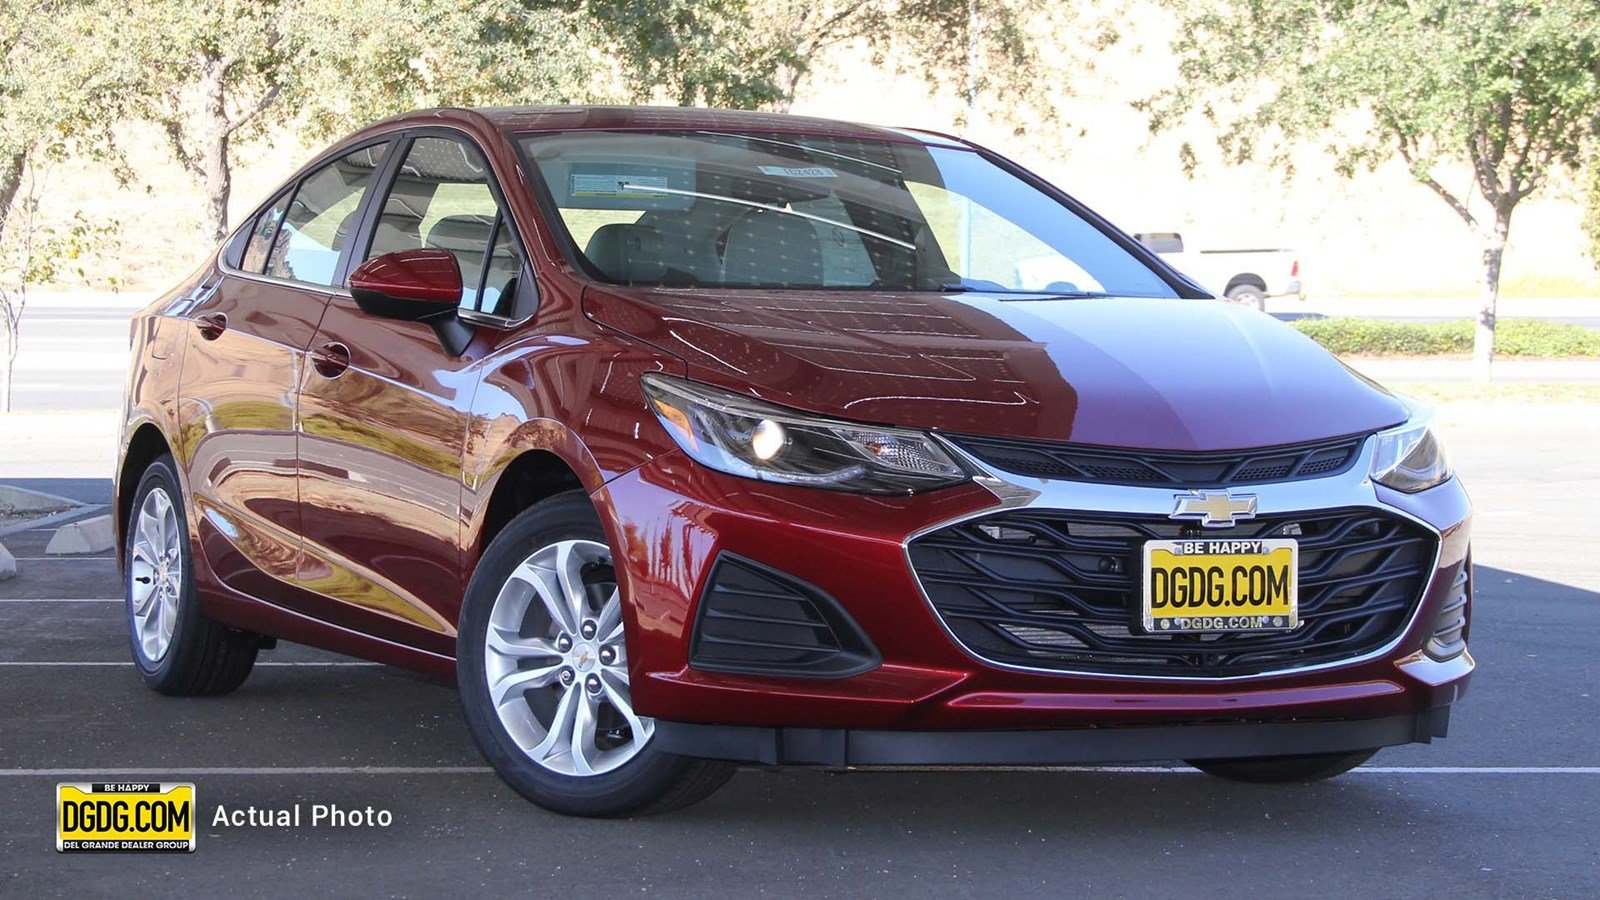 Chevrolet Cruze Owners Manual: When It Is Time for New Tires